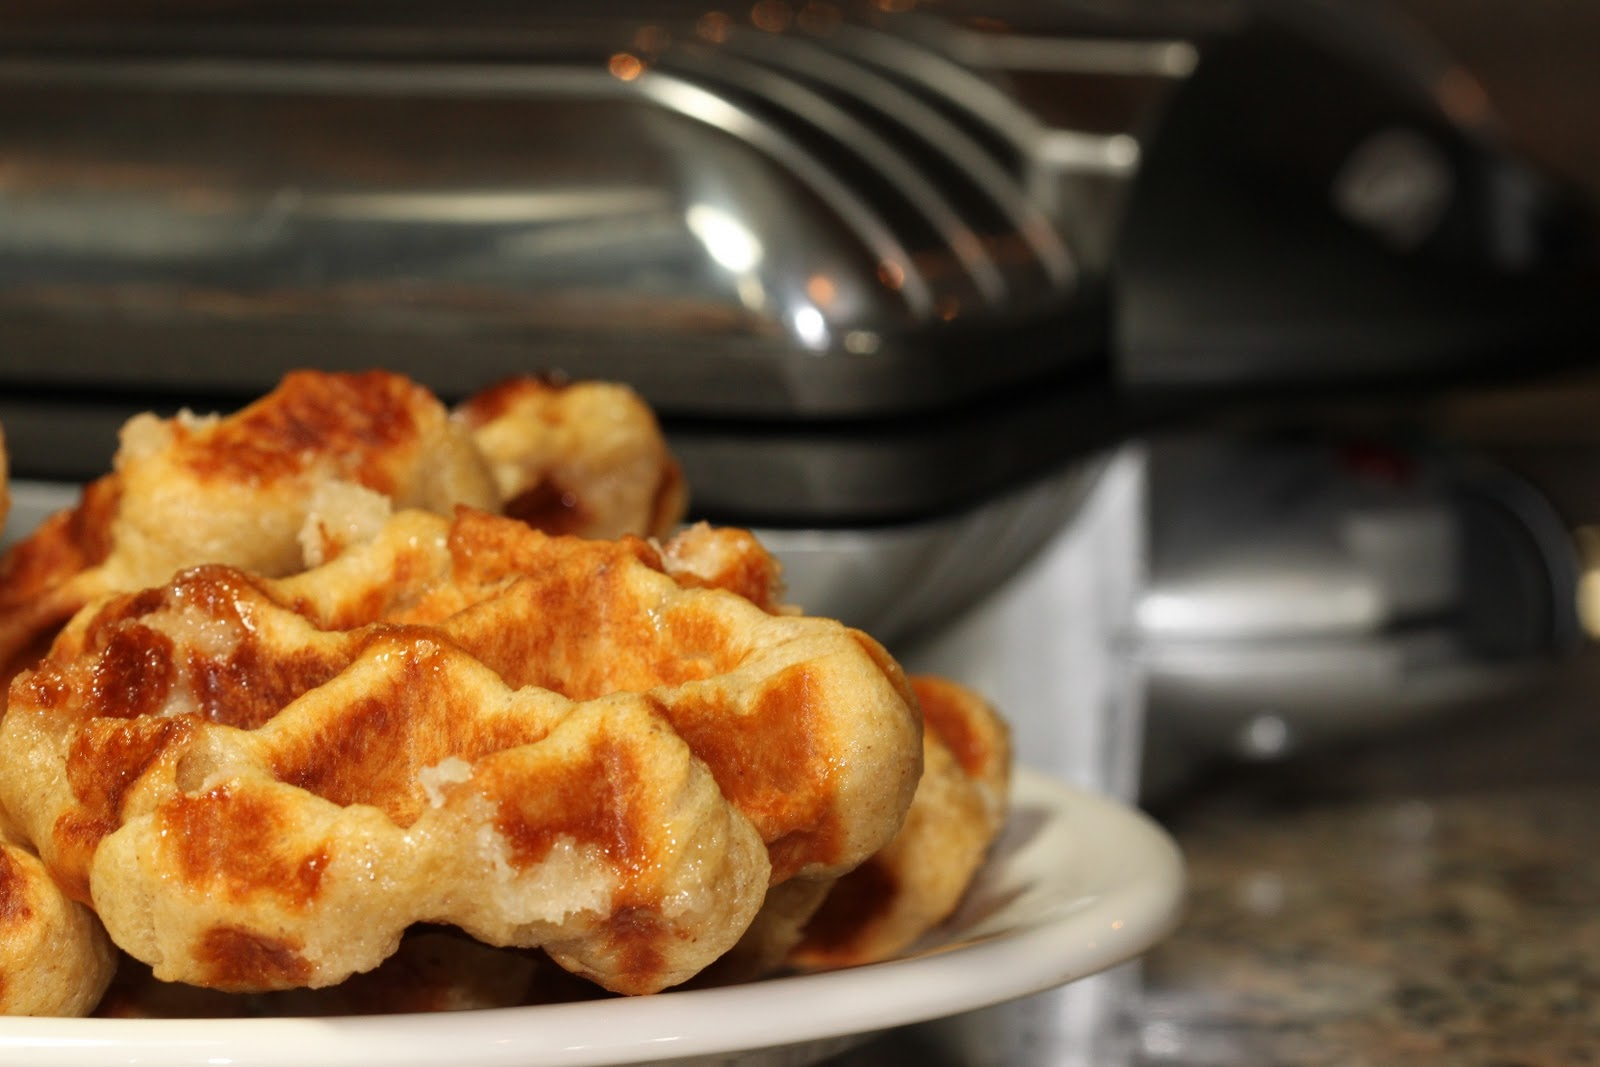 Baking is my Zen: Liege Waffles ~ HOT OFF THE PRESS